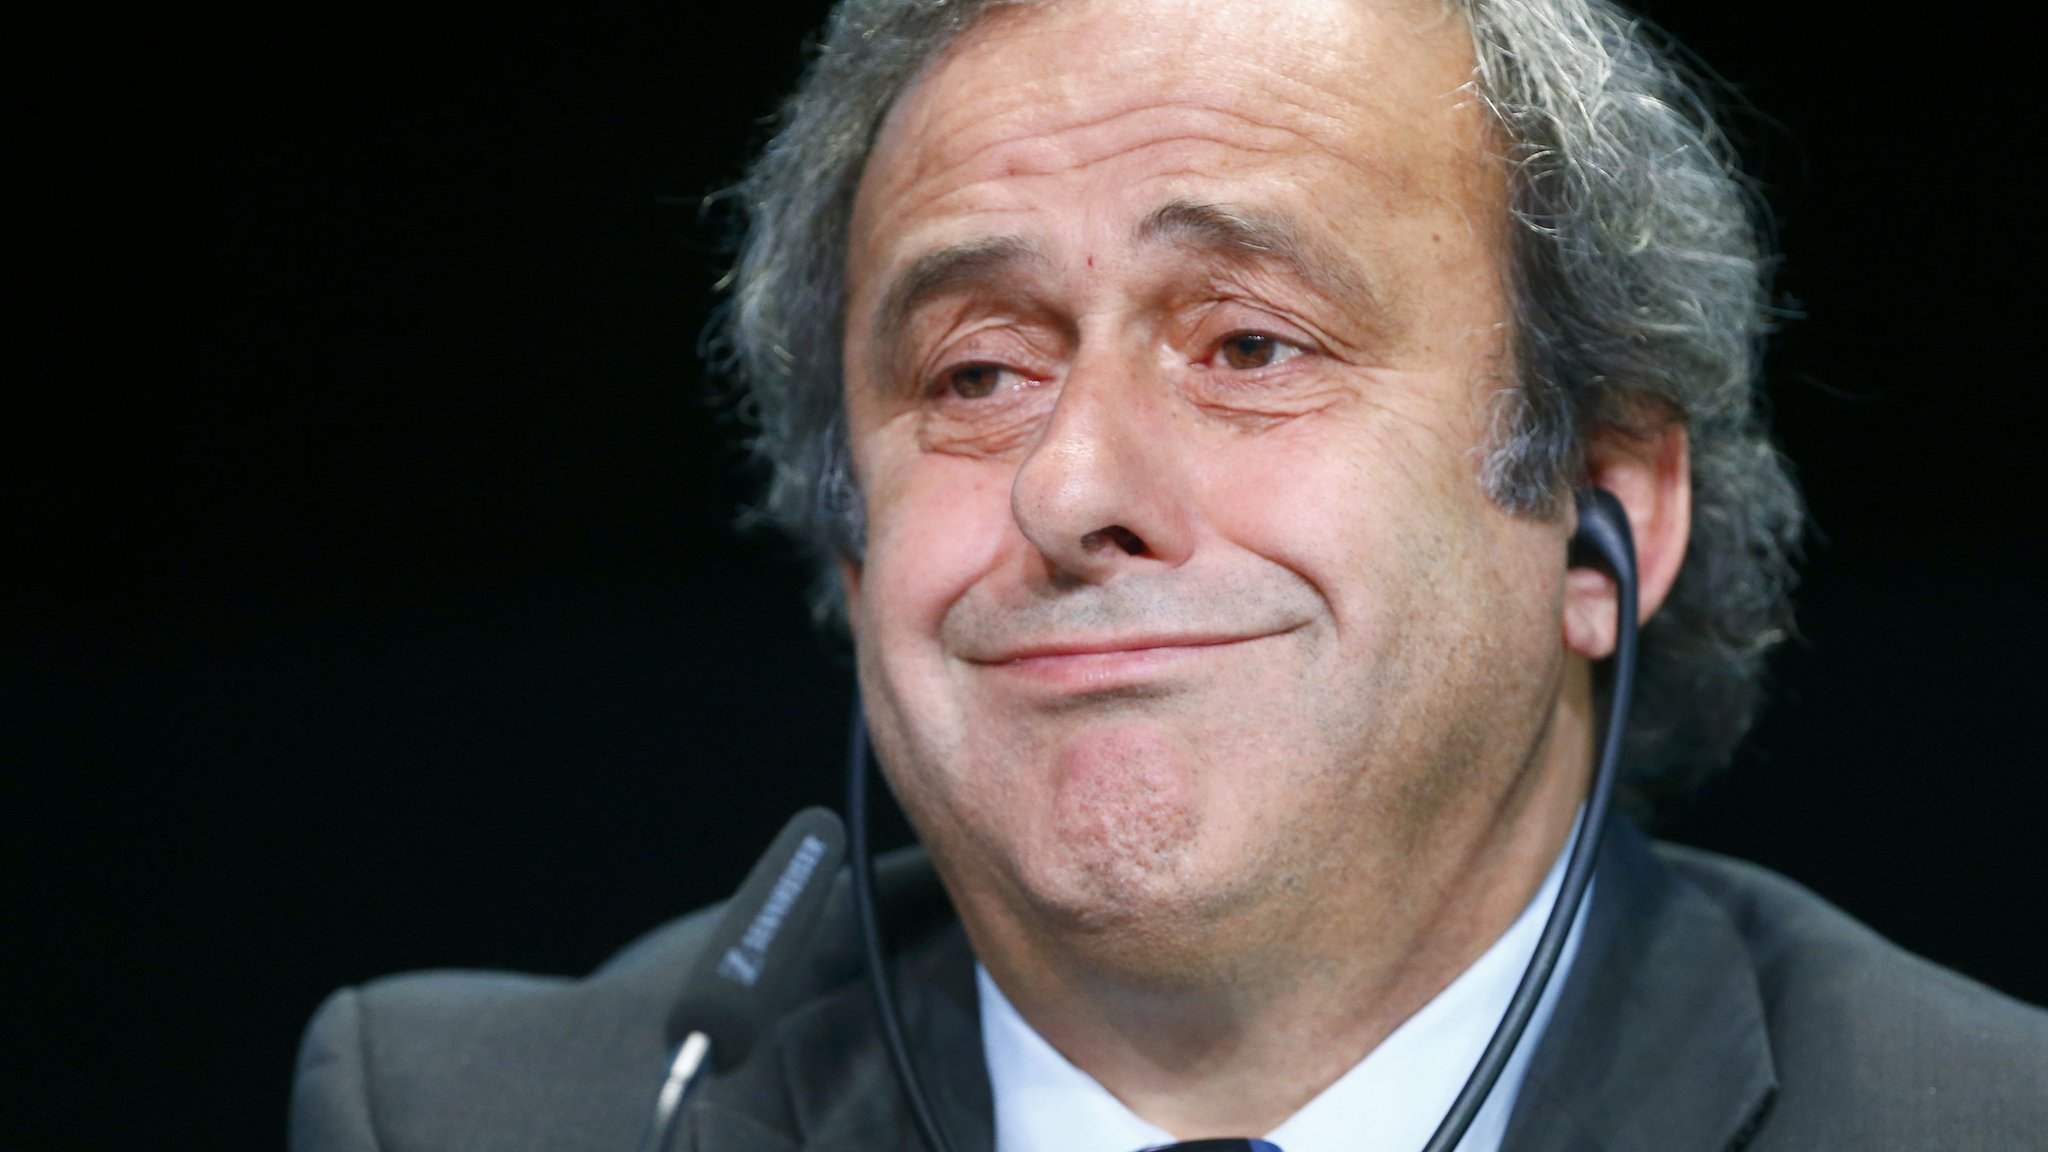 Michel Platini: No criminal charges, claims ex-Uefa president | BBC